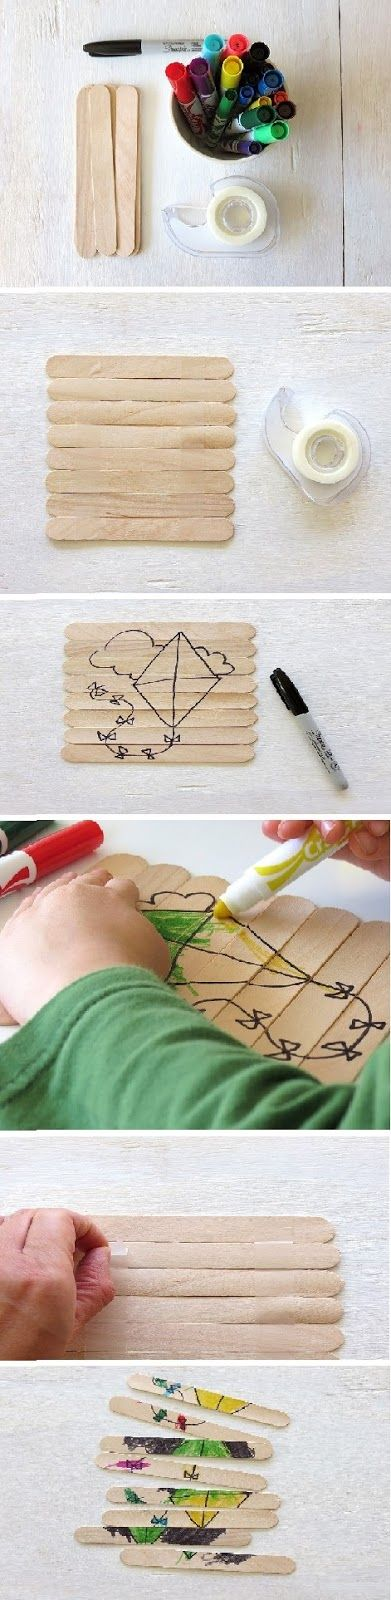 DIY Craft Stick Puzzle. i will make this for my siblings to play with on long car/plane rides